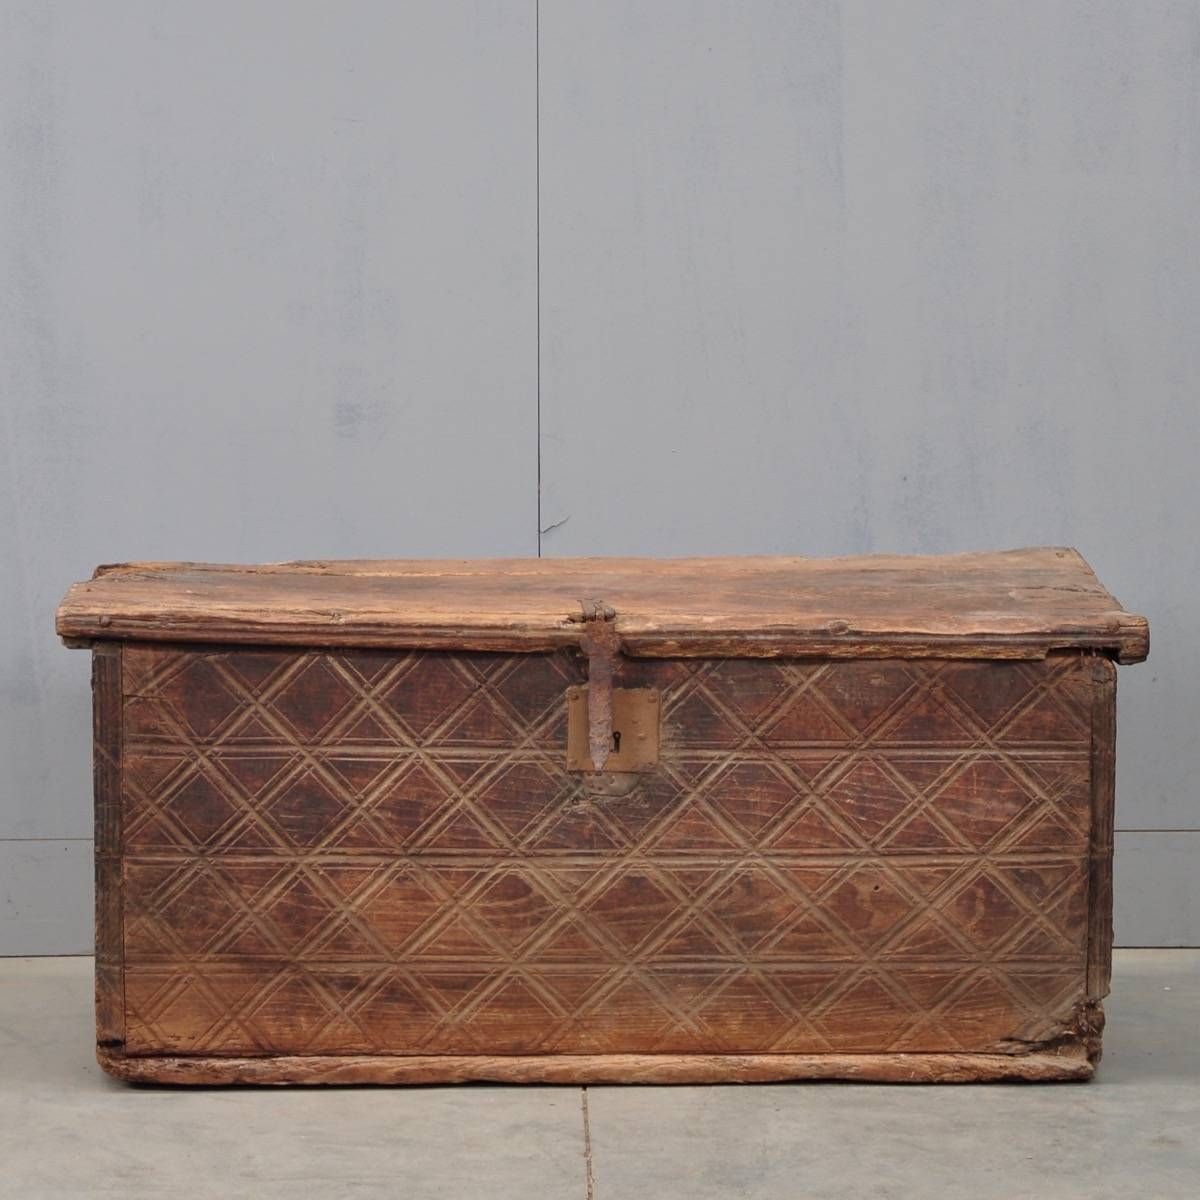 Shop this Original Spanish early coffer with carved side decorations from  Paul de grande Antique furnture and Early decorative objects. - Original Spanish Early Coffer With Carved Side Decorations. Early